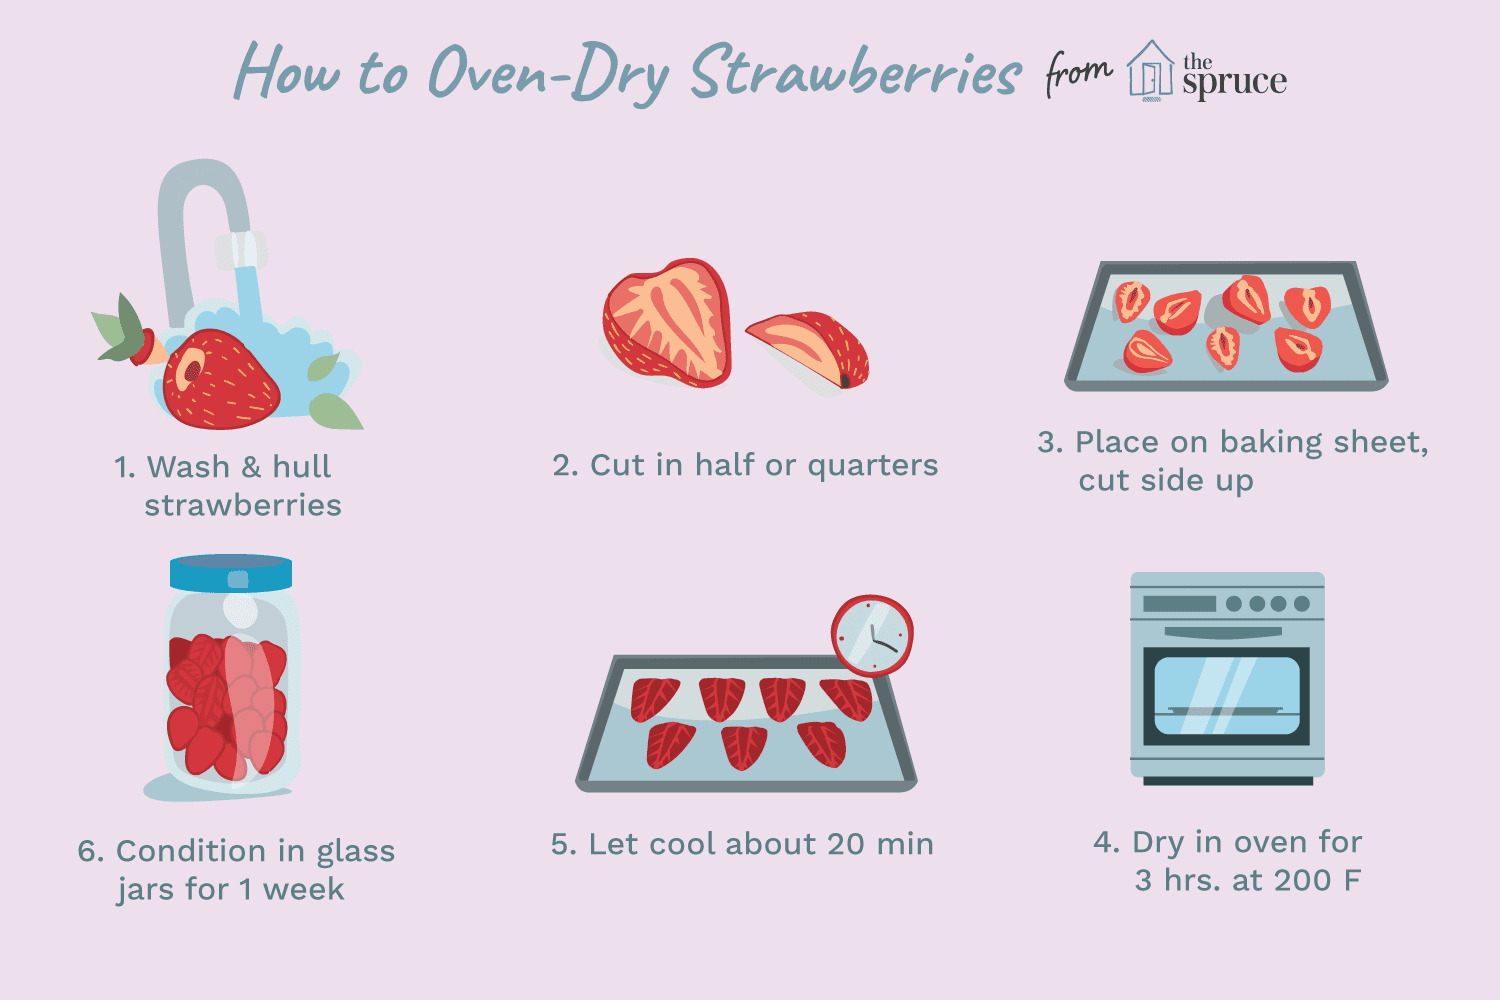 dried strawberries in oven review